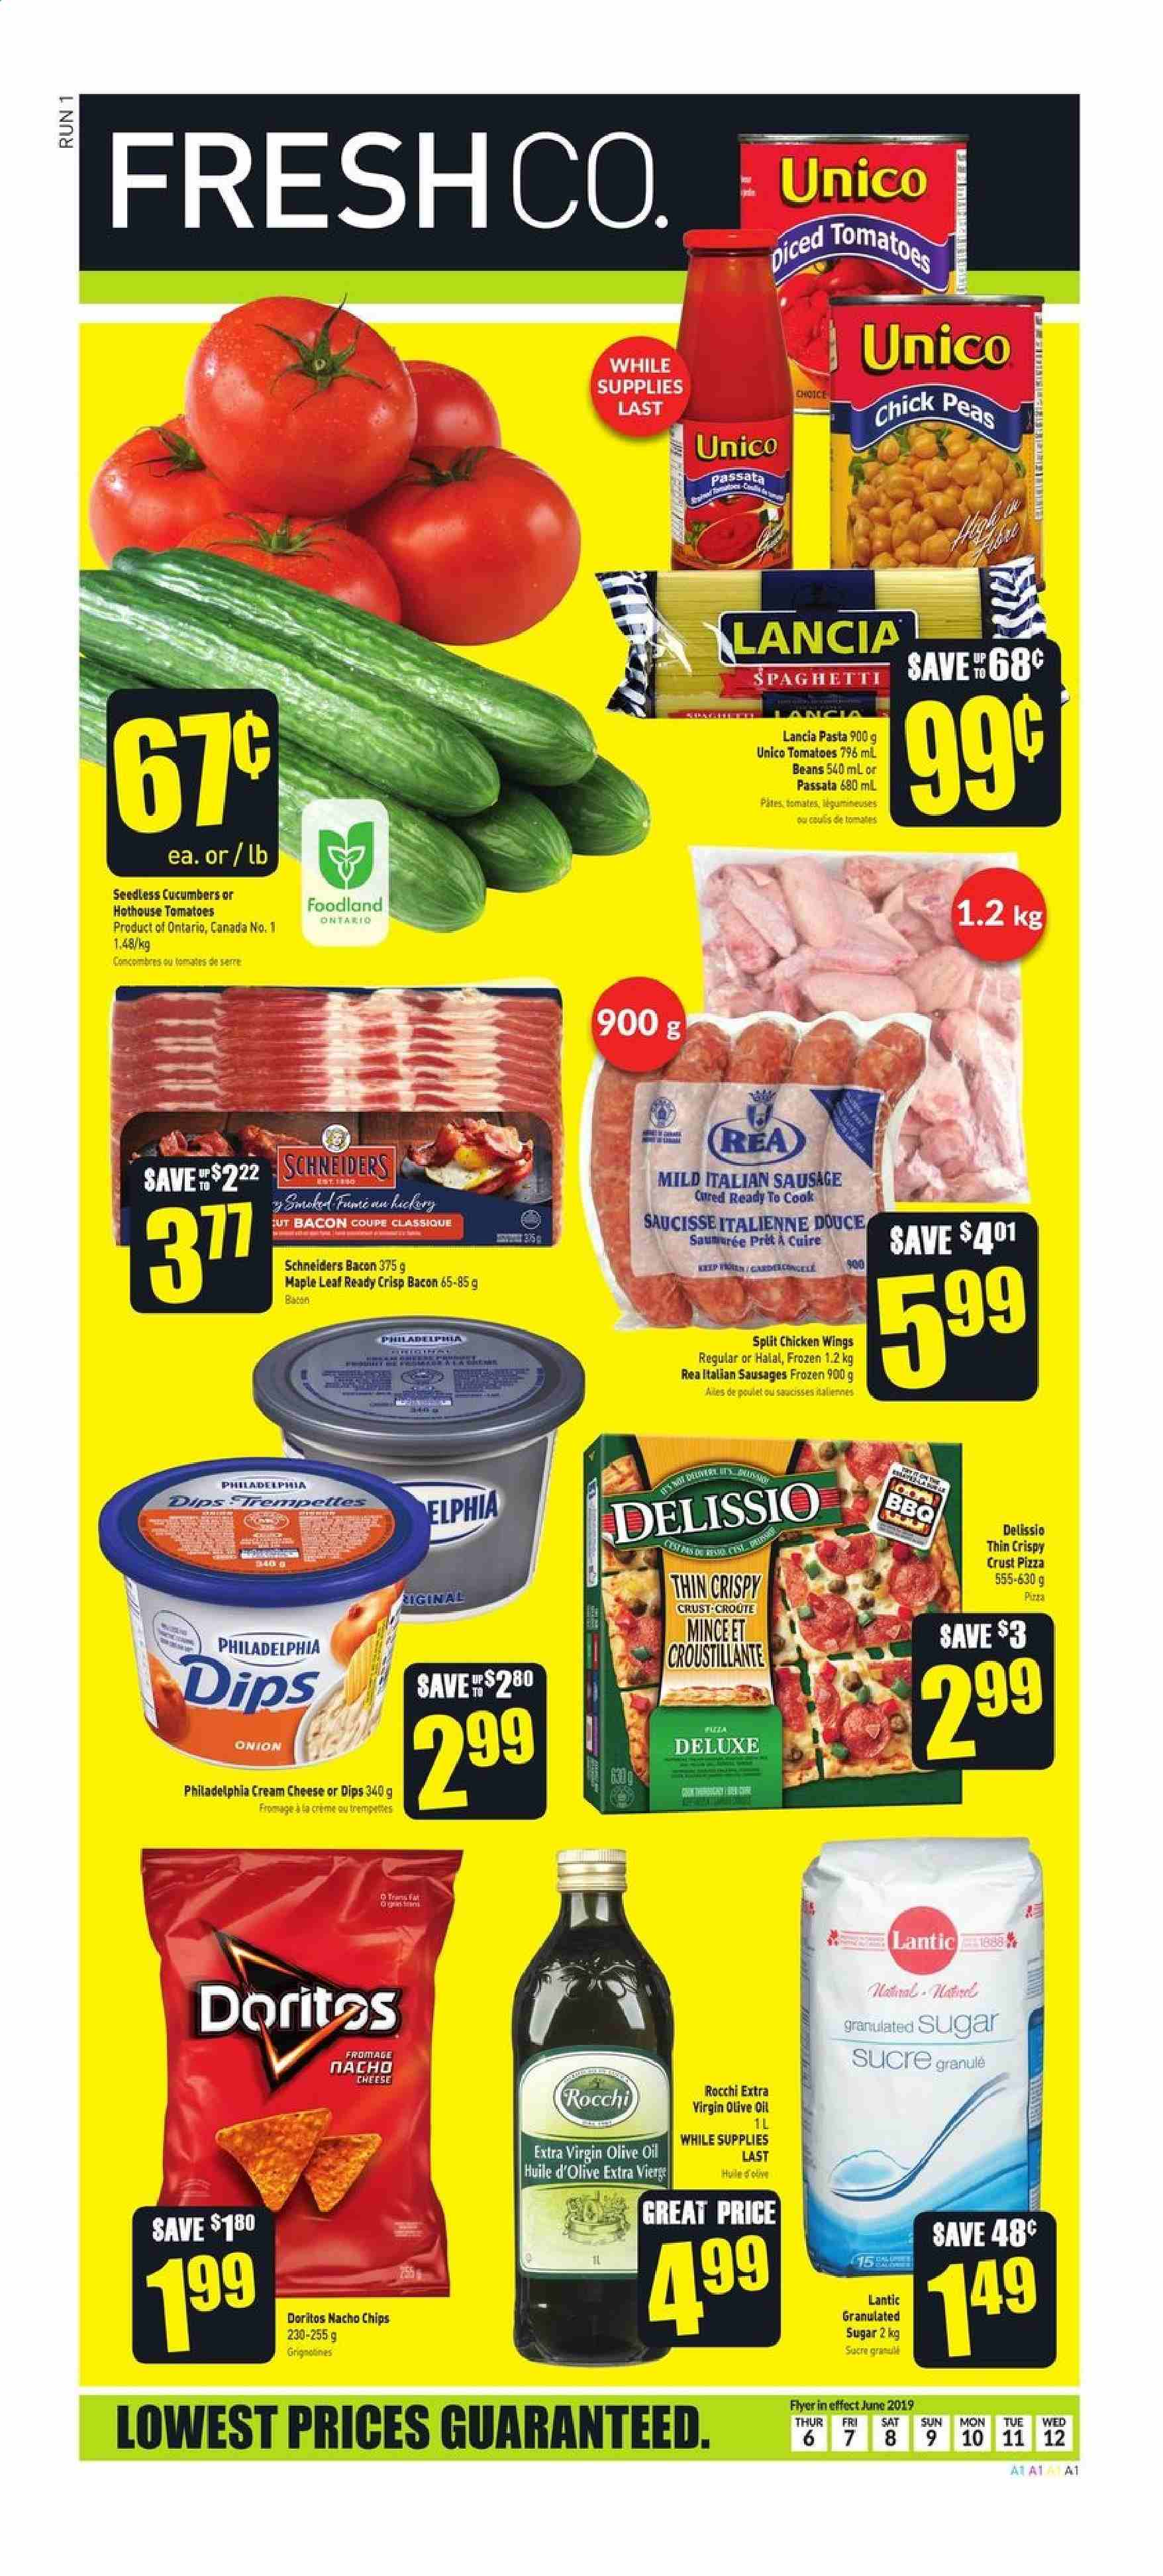 FreshCo. Flyer  - June 06, 2019 - June 12, 2019. Page 1.